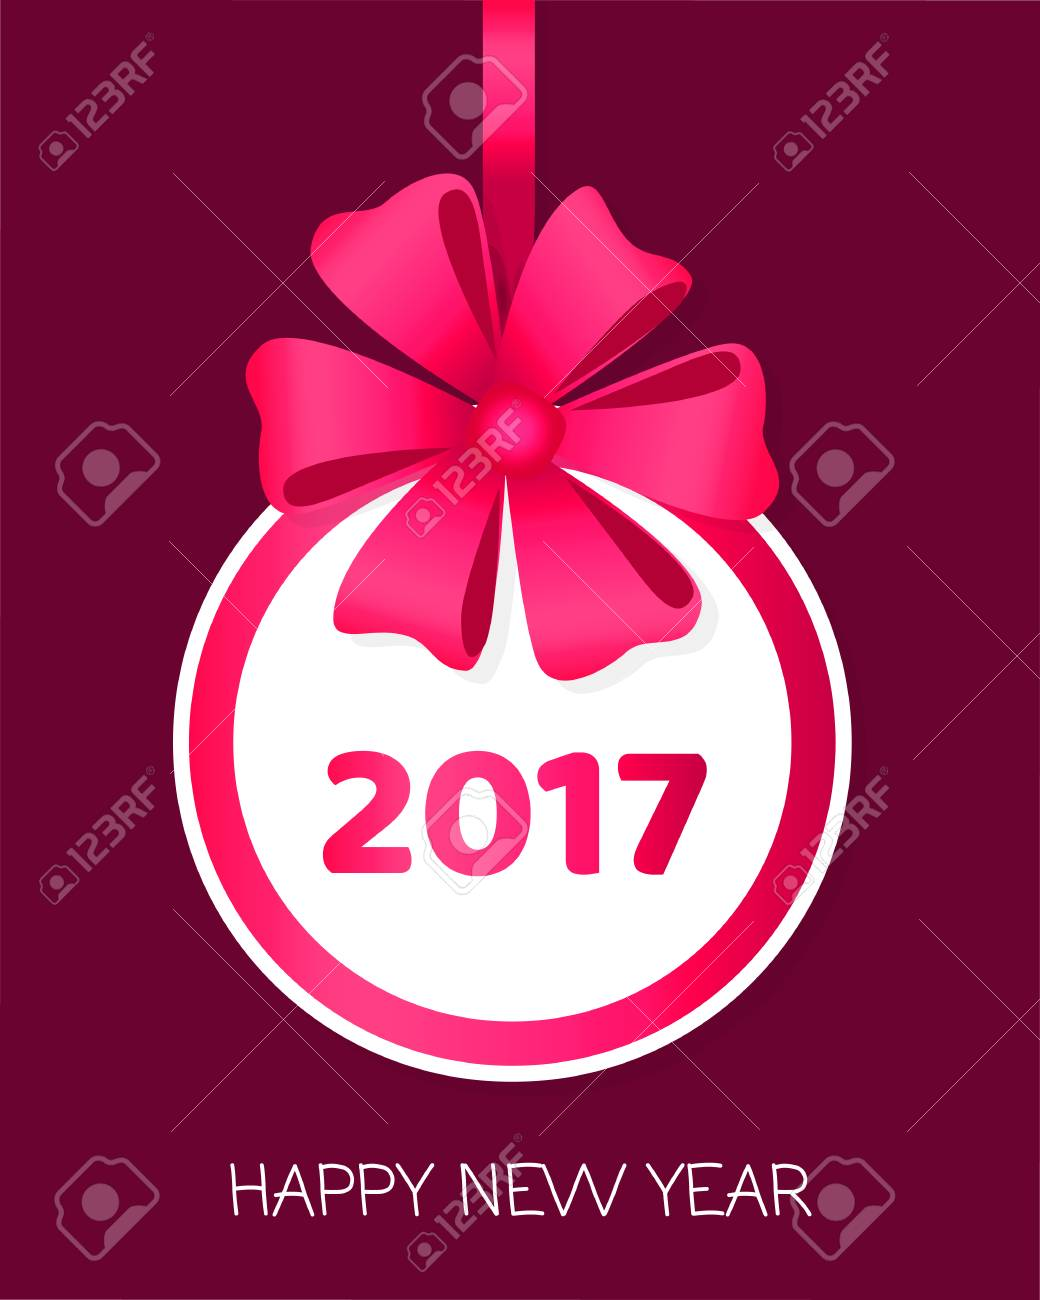 2017 Happy New Year Round Banner With Ribbons Royalty Free Cliparts